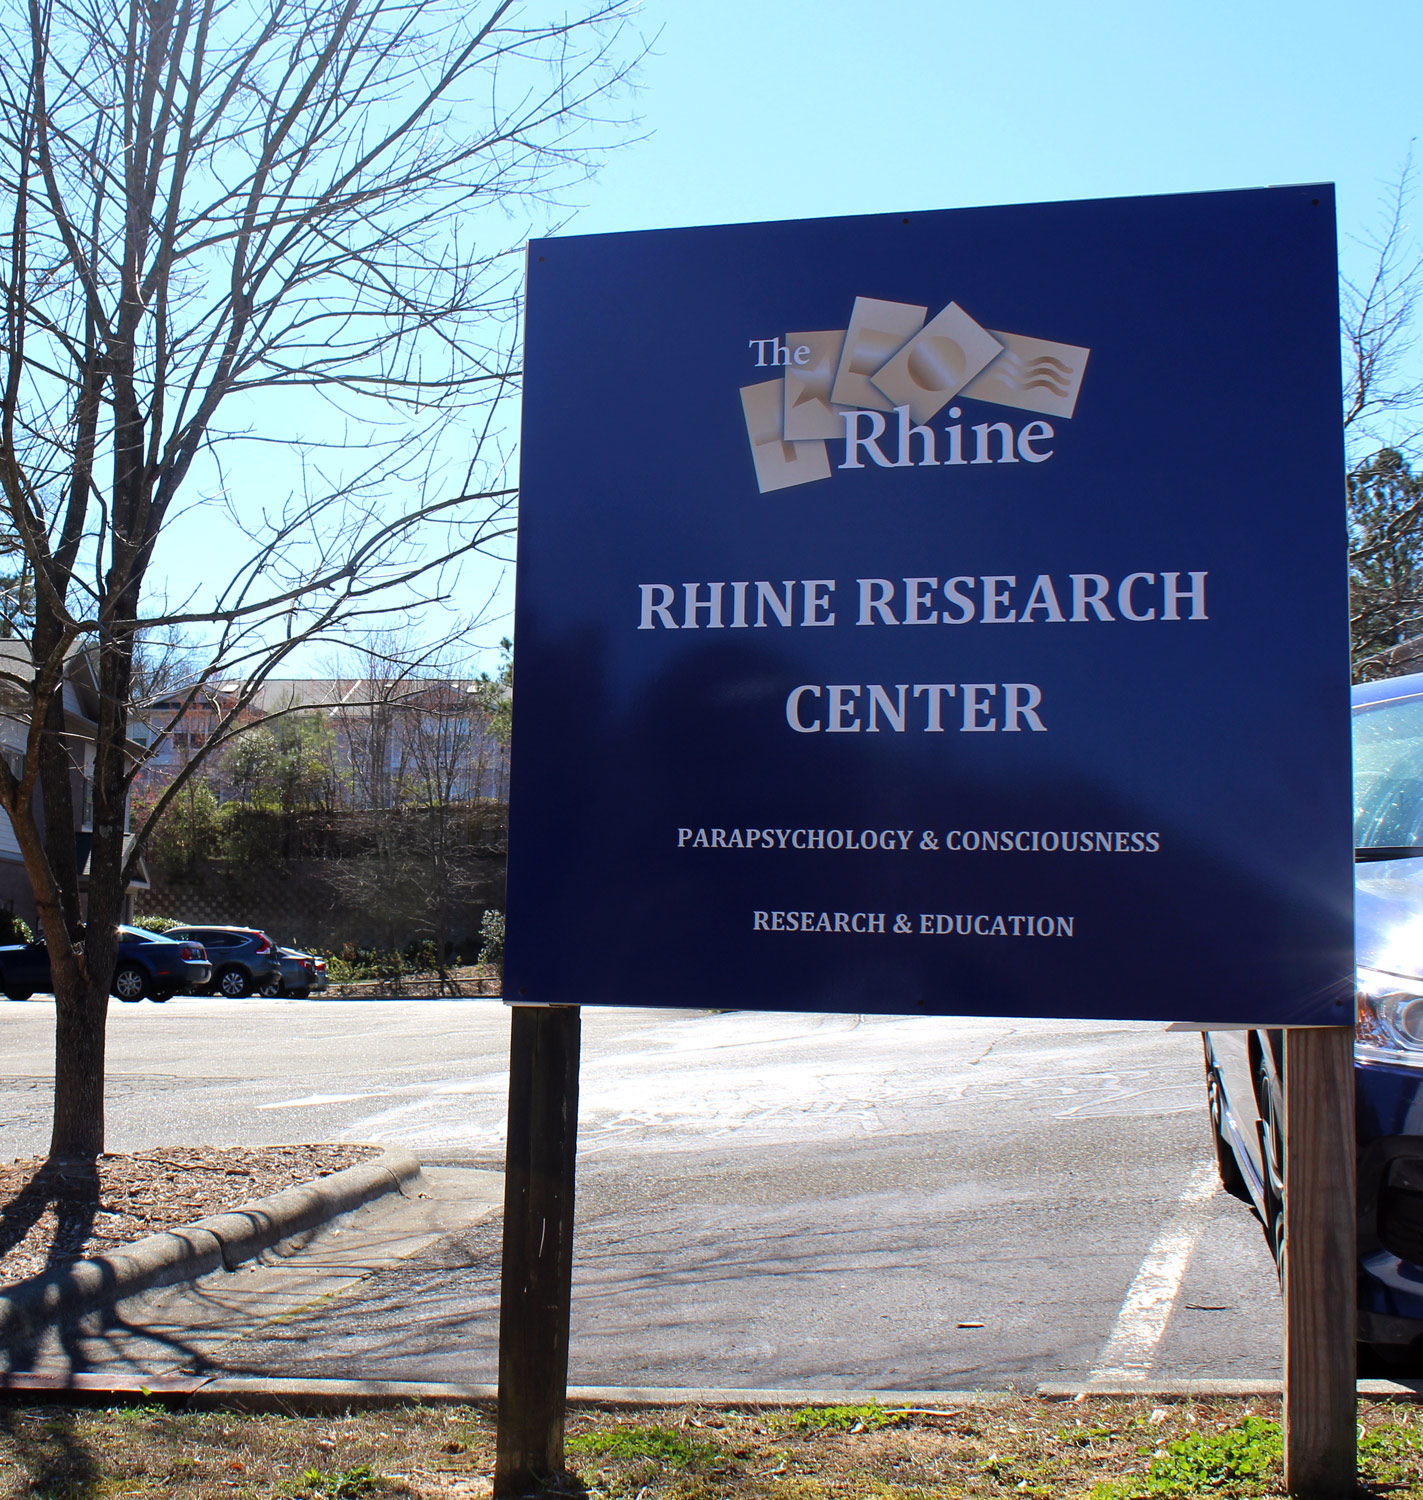 The Rhine Research Center: Parapsychology and Consciousness, Research and Education